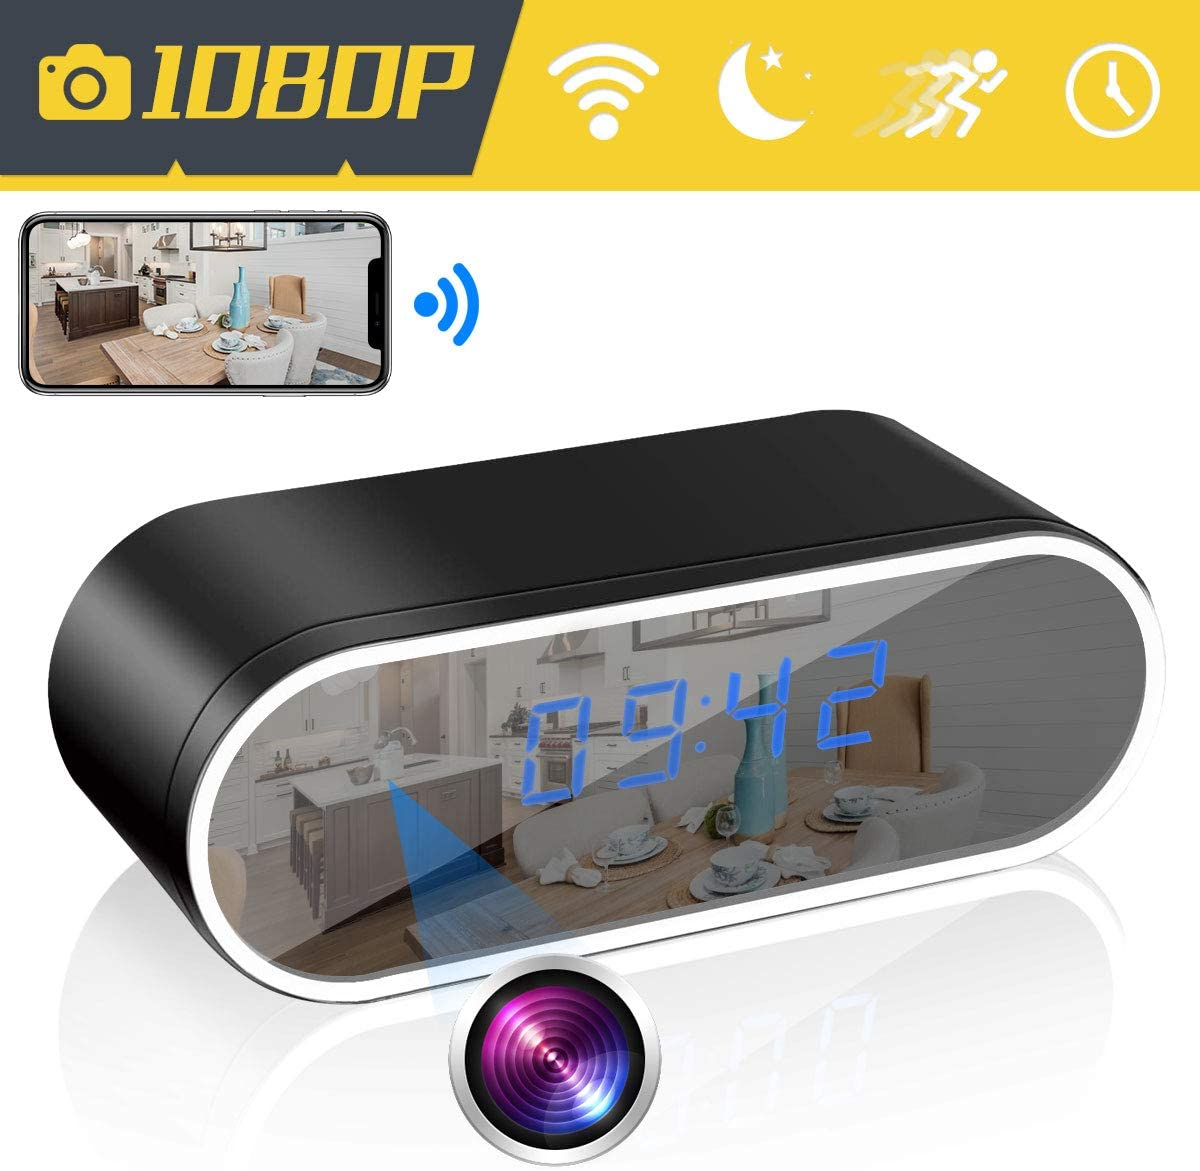 WiFi Hidden Camera Alarm Clock Camera, AMCSXH HD 1080P Spy Camera Security for Home and Office with Motion Detection/Loop Recording, Night Vision, Remote Real-time Video, Video only